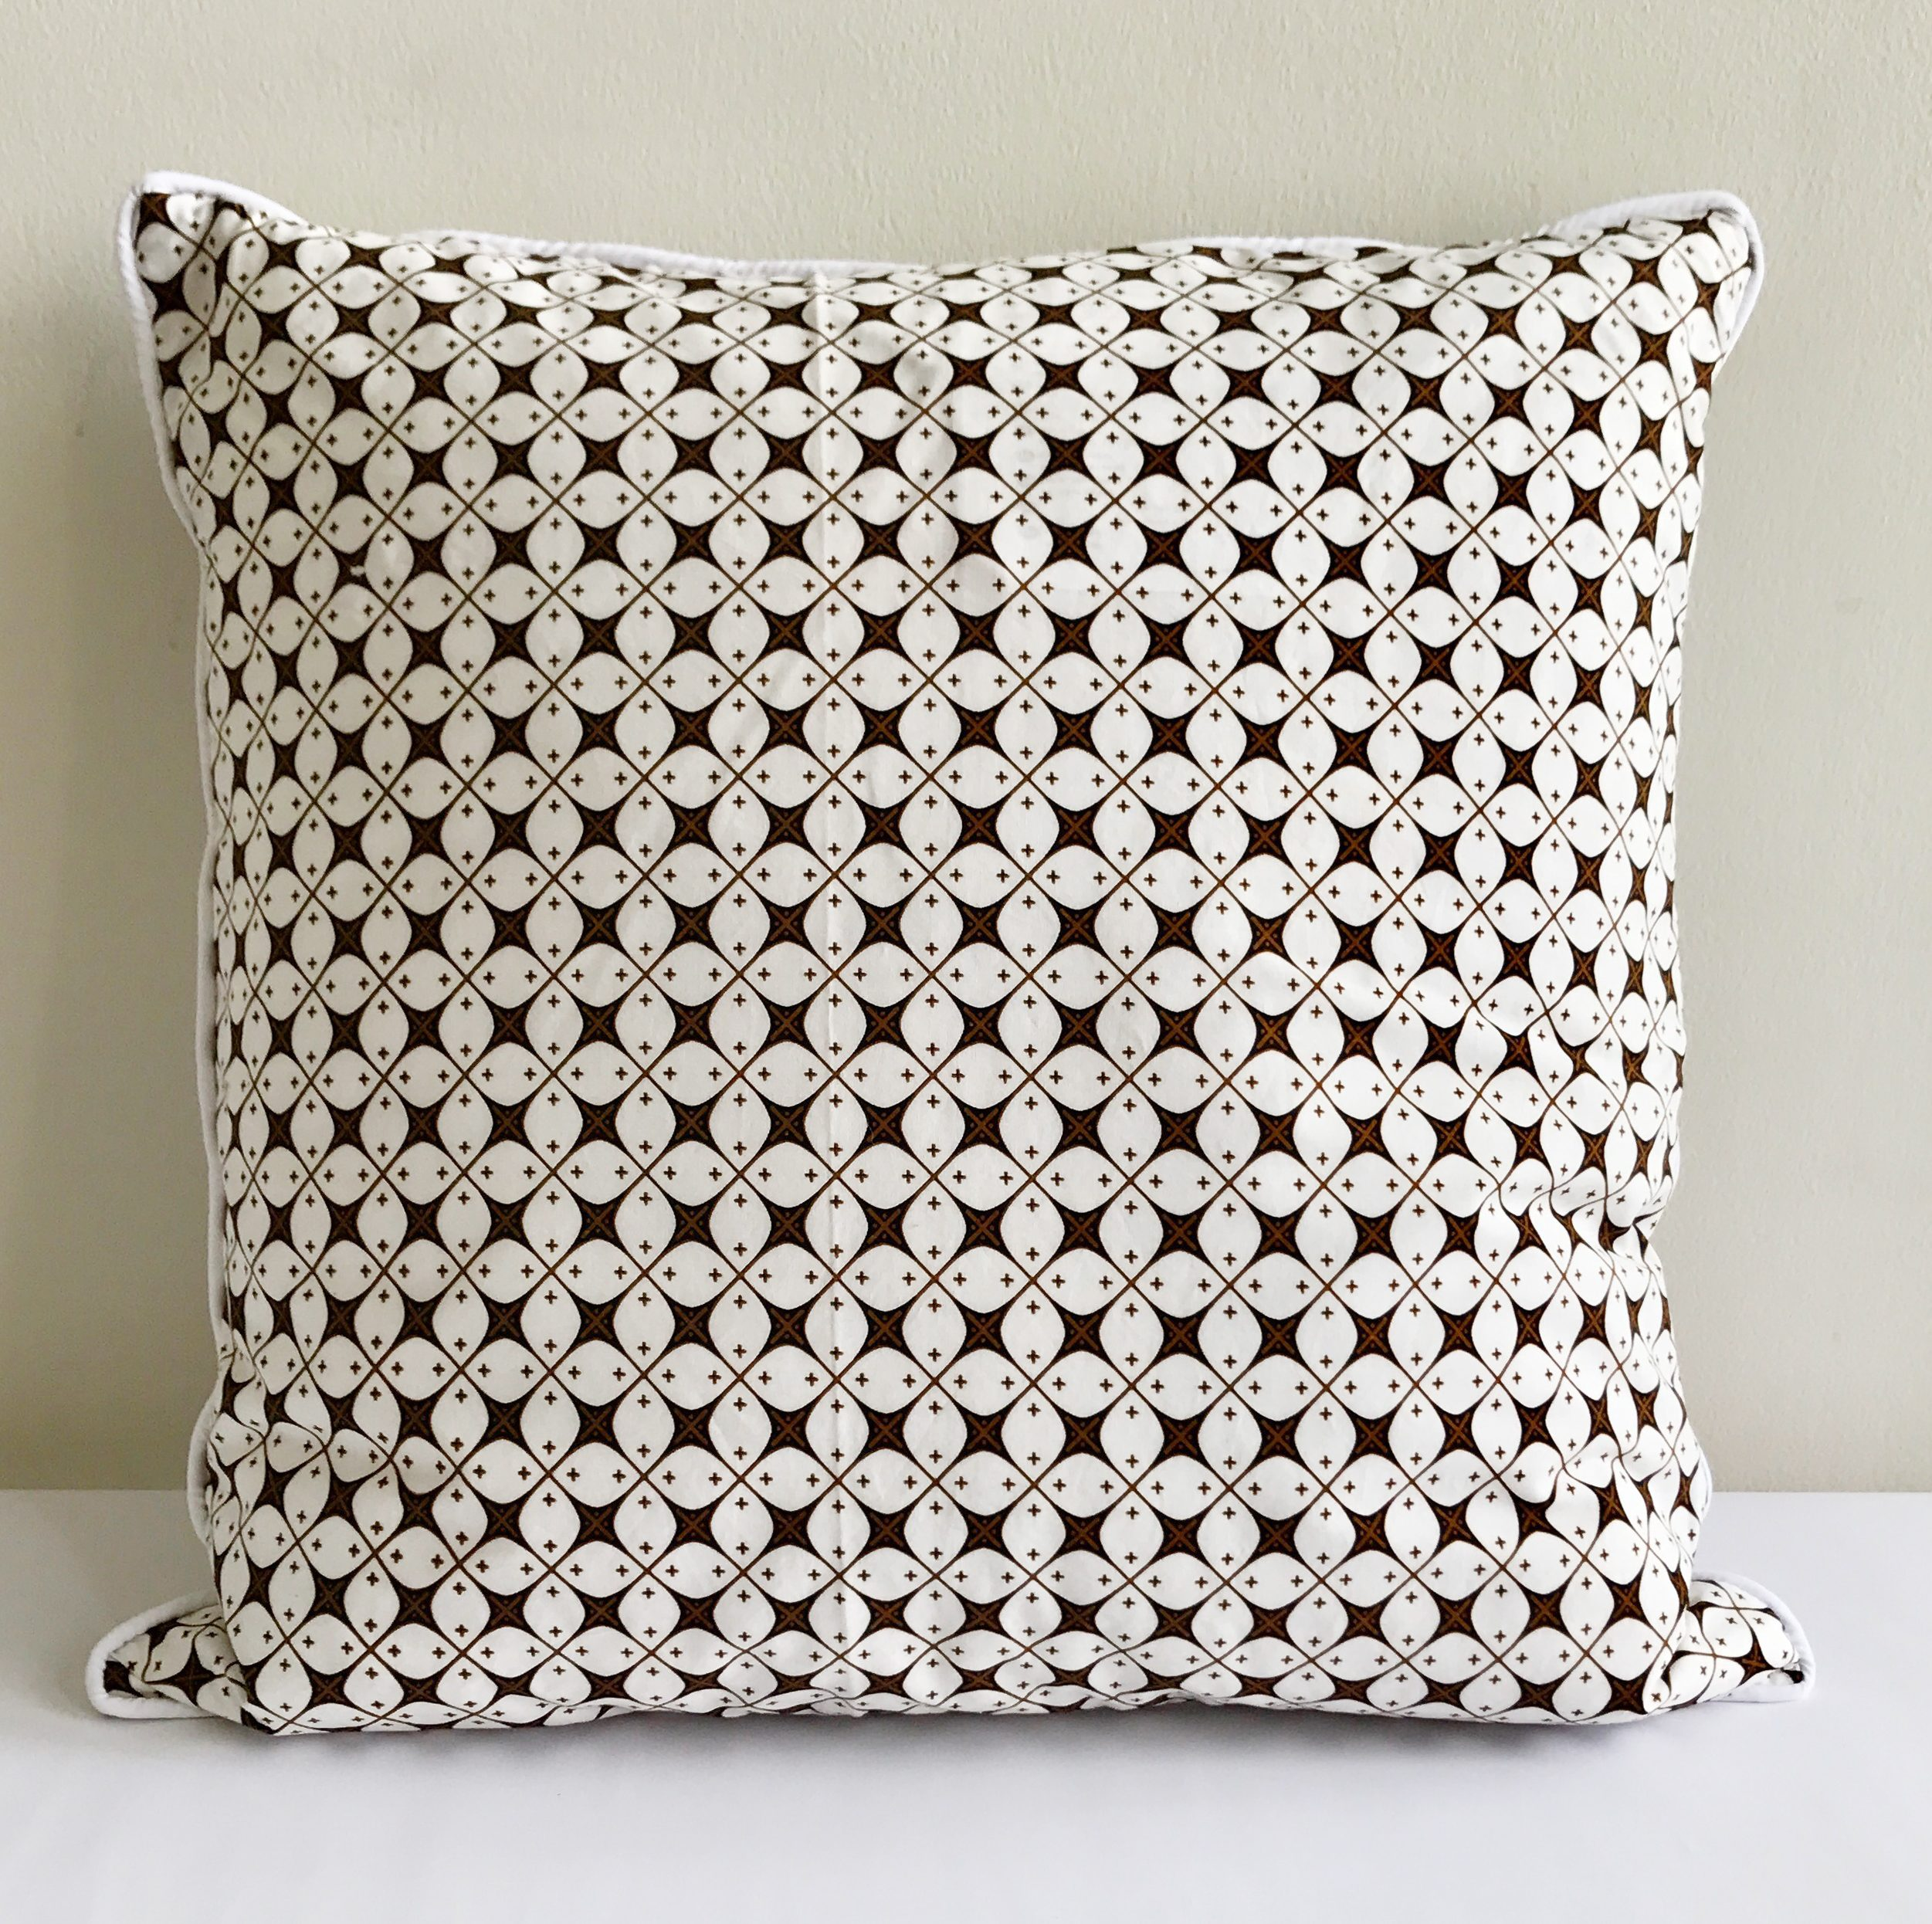 Well-liked Handsome Batik Throw Pillow Cushion Cover JY87